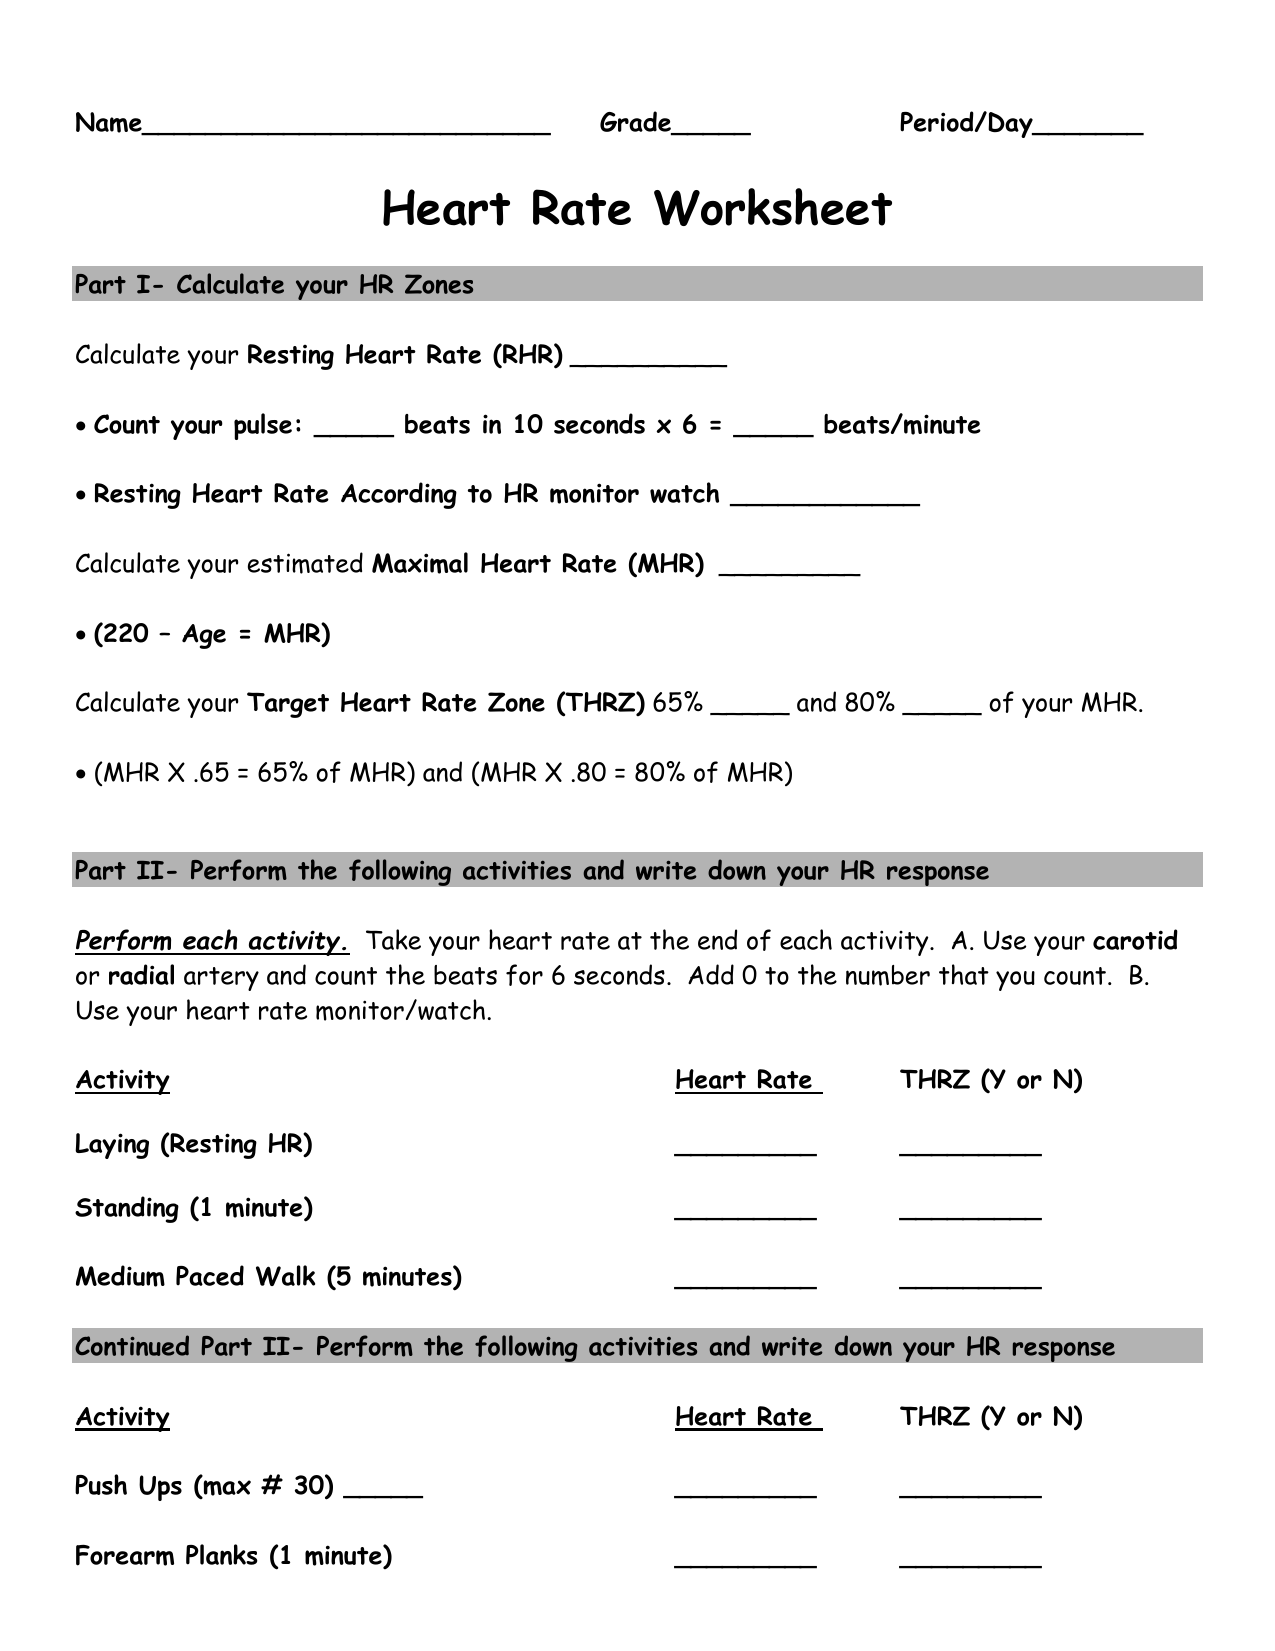 small resolution of Heart Rate Activity Worksheet - Belle Vernon Area School District    Physical education lessons